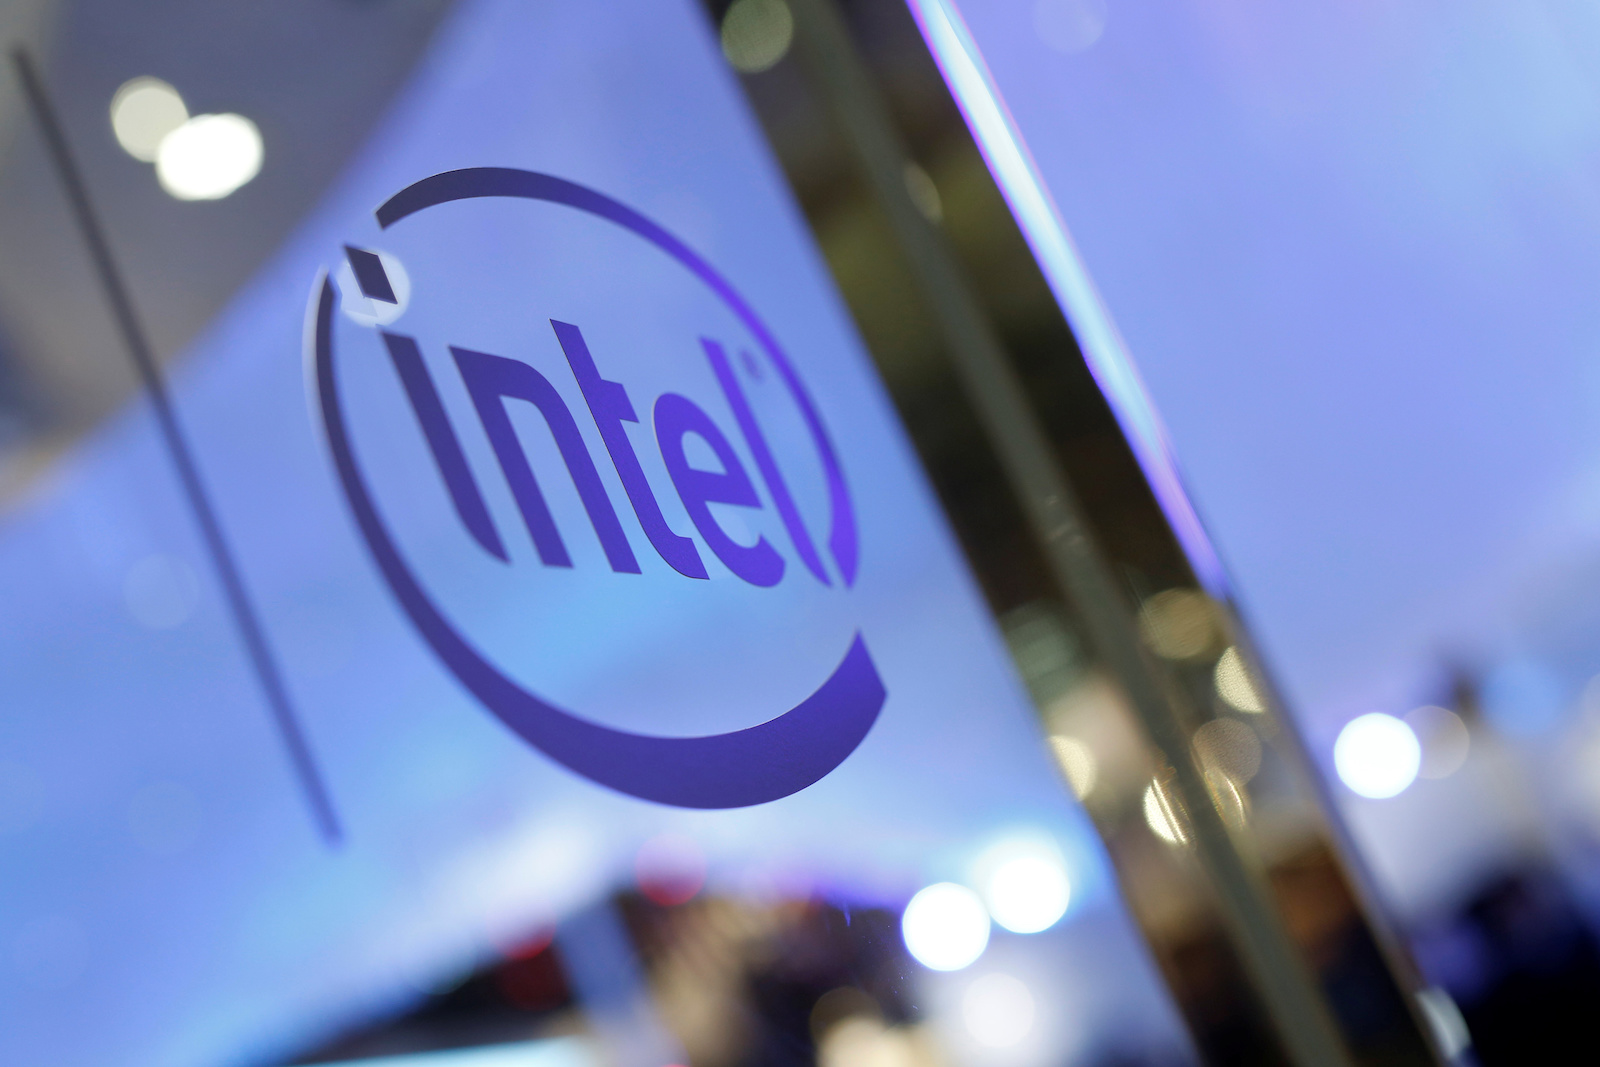 The logo of Intel is seen during the annual Computex computer exhibition in Taipei, Taiwan June 1, 2016. REUTERS/Tyrone Siu - D1BETHJEVYAA